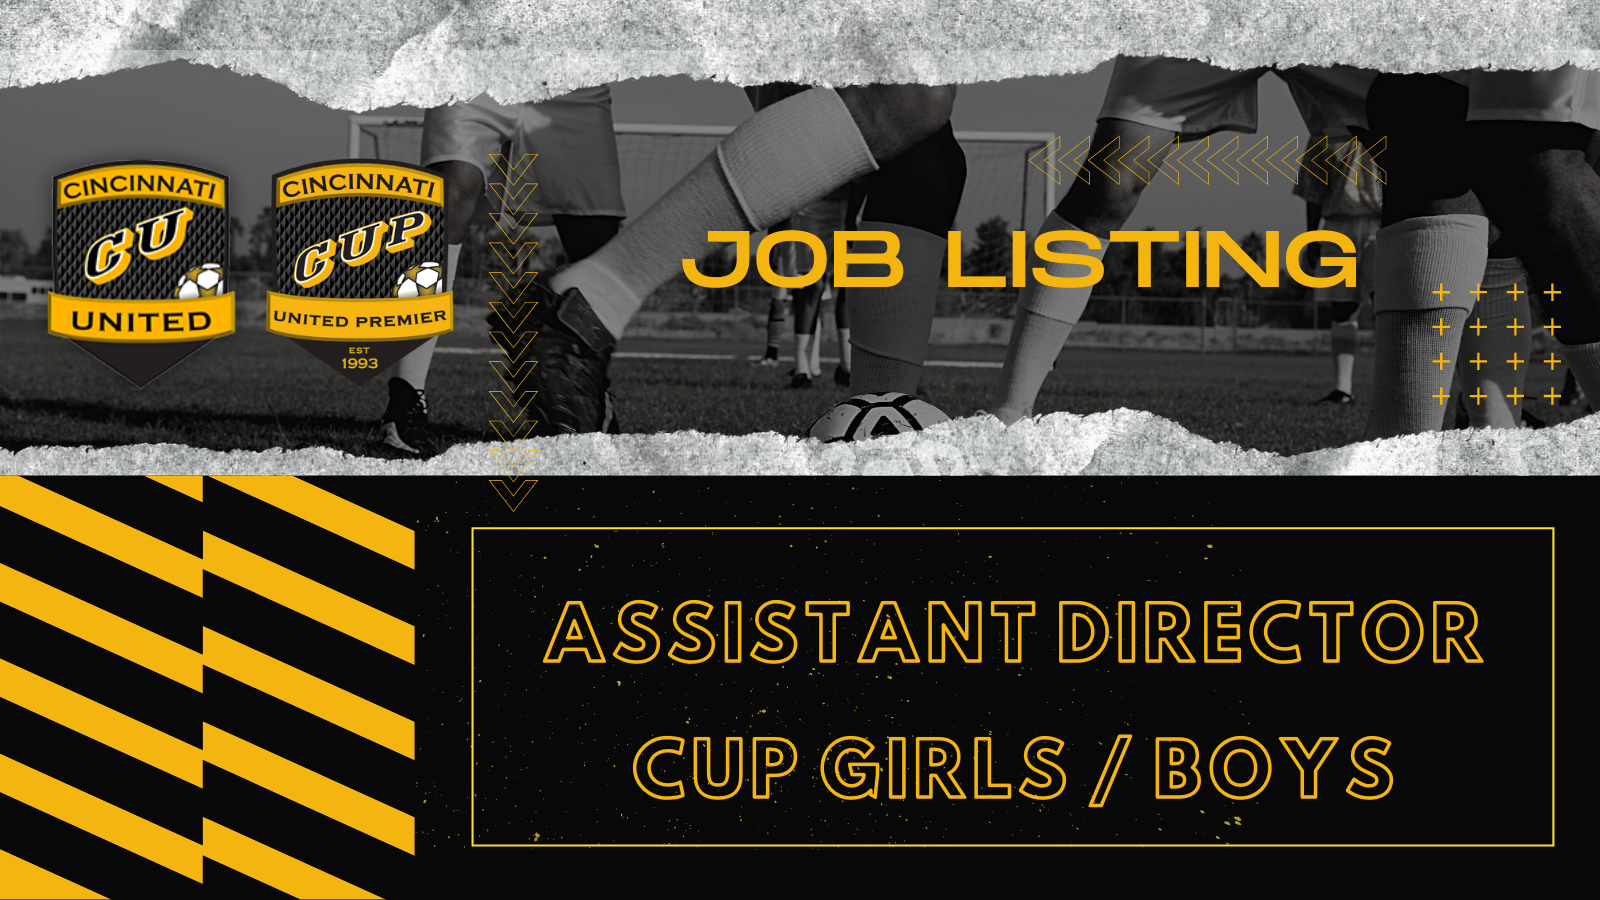 Job Listing: Assistant Director CUP Girls / Boys